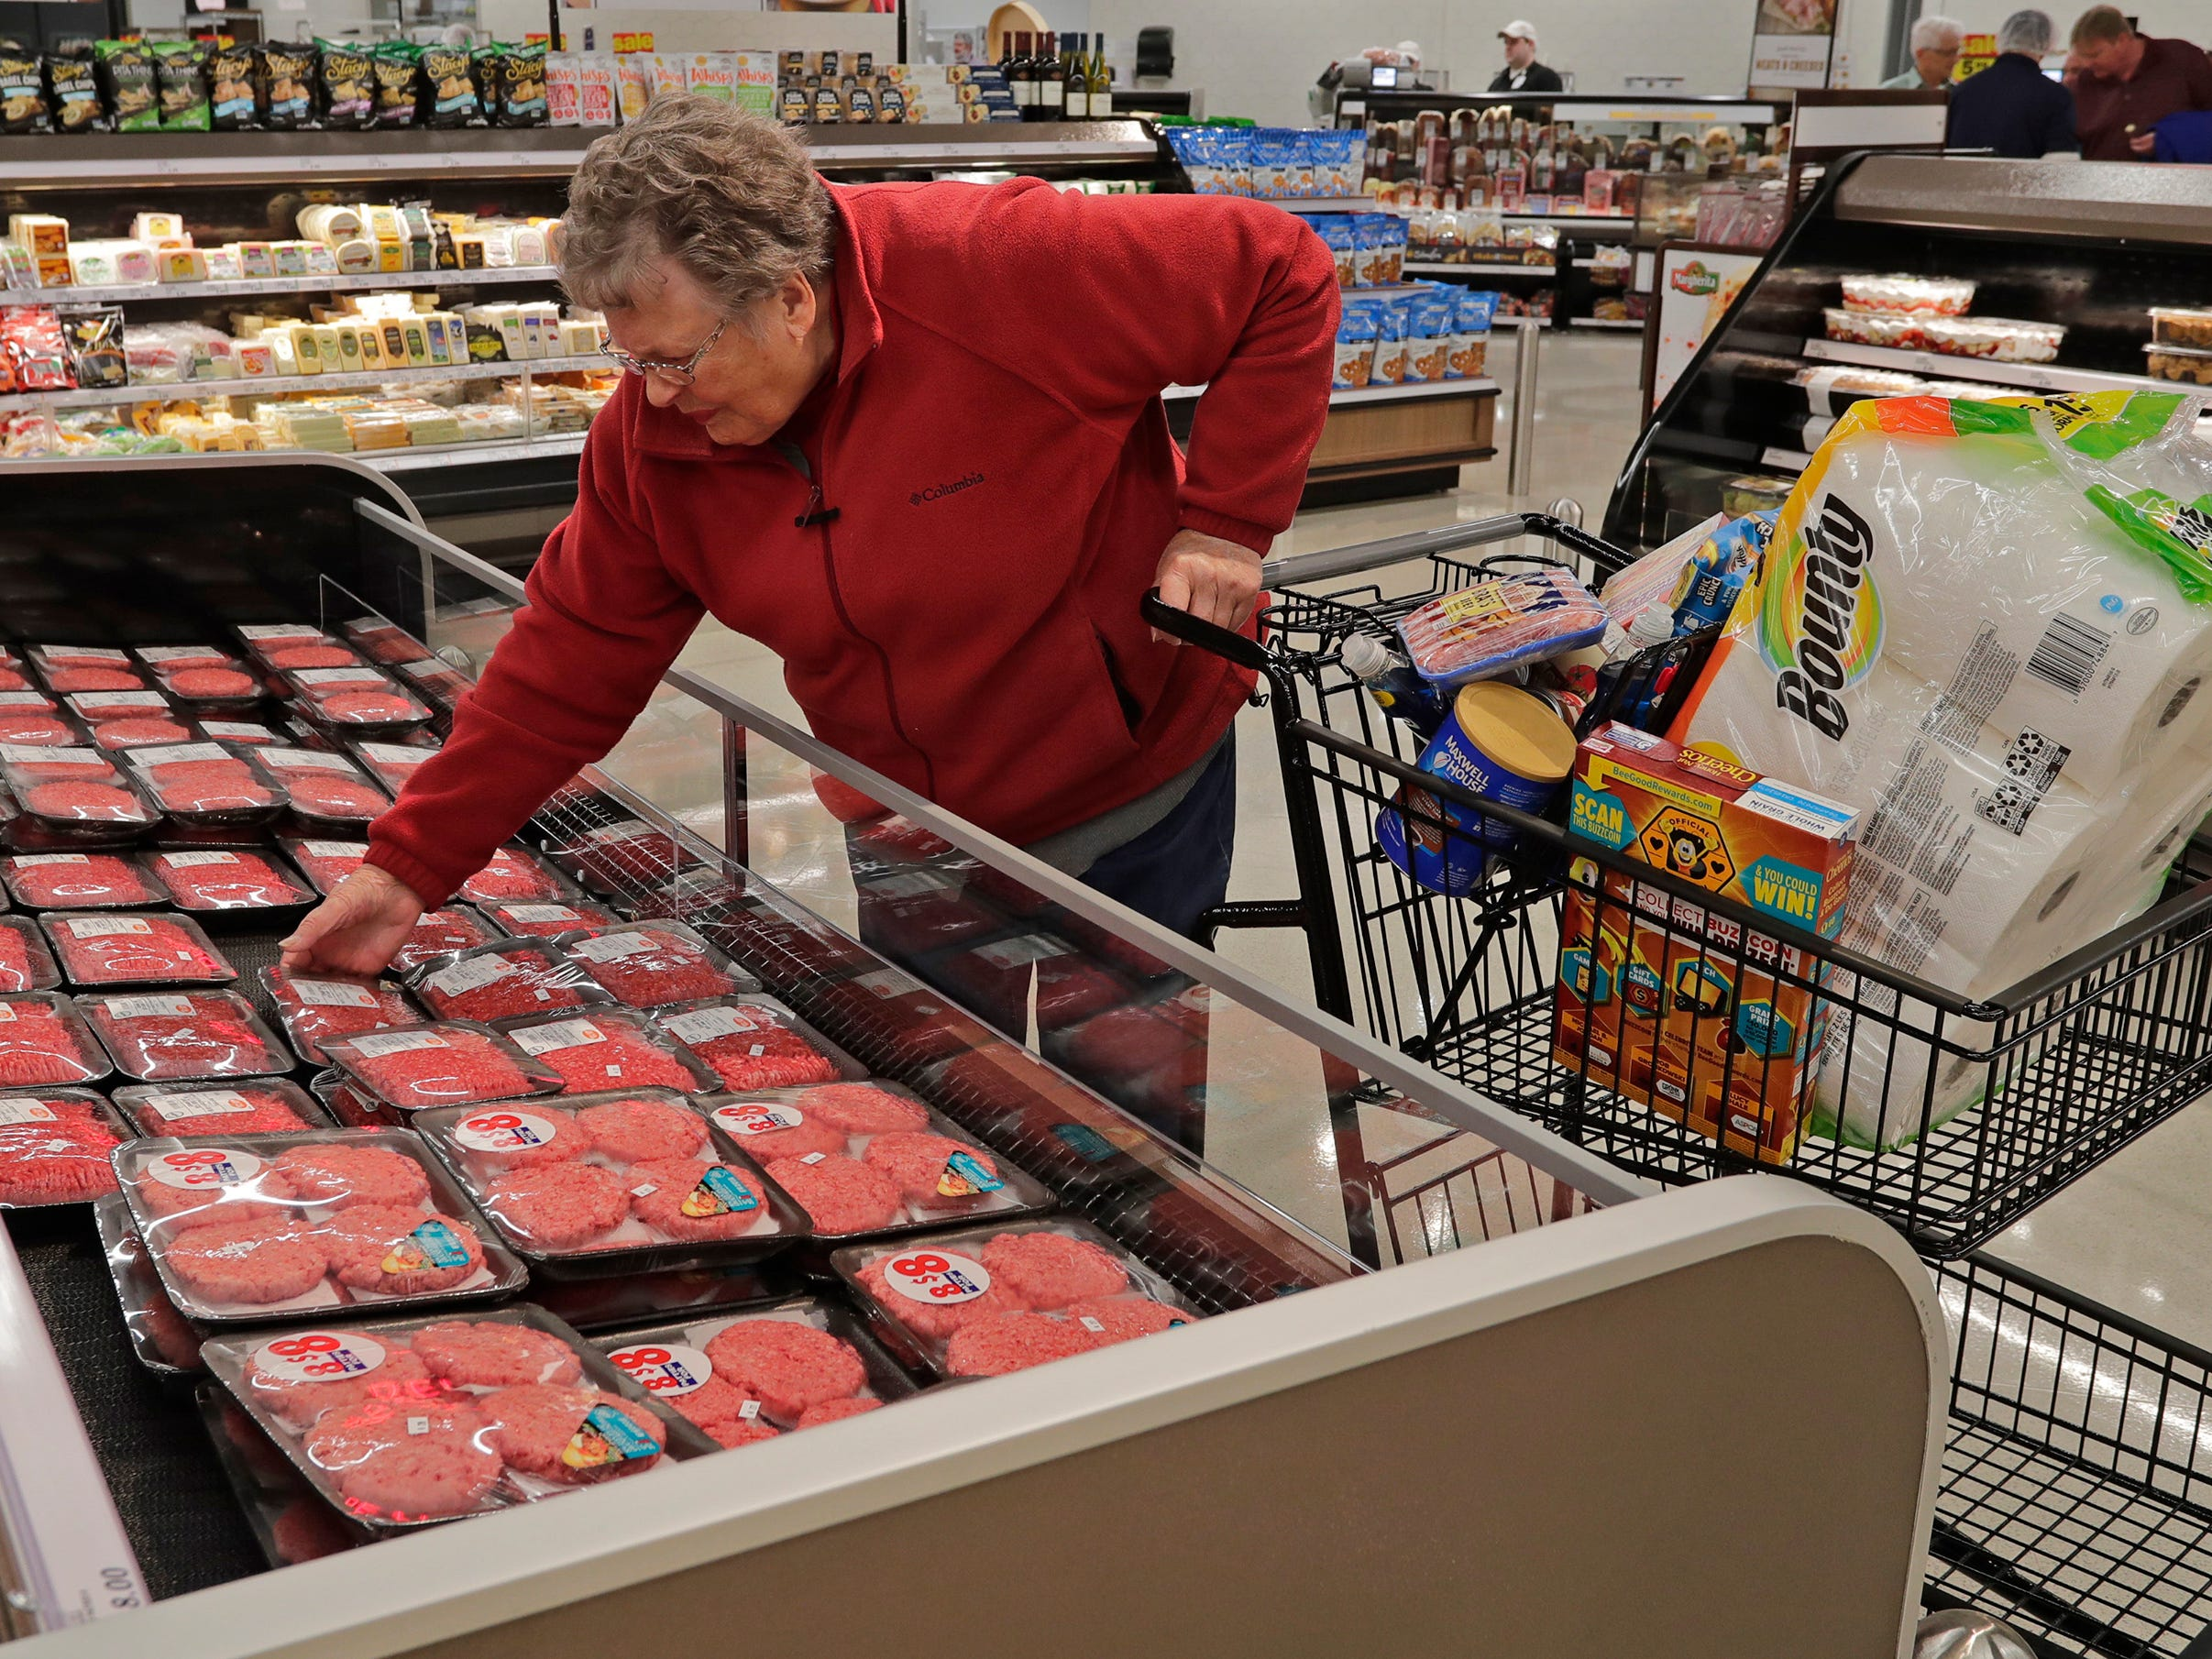 Lorraine Broetzmann of Sheboygan Falls, Wis. purchases food items during opening day at Meijer, Thursday April 25, 2019, in Sheboygan, Wis. The 155,000-square-foot supercenter has 300 employees on opening day.